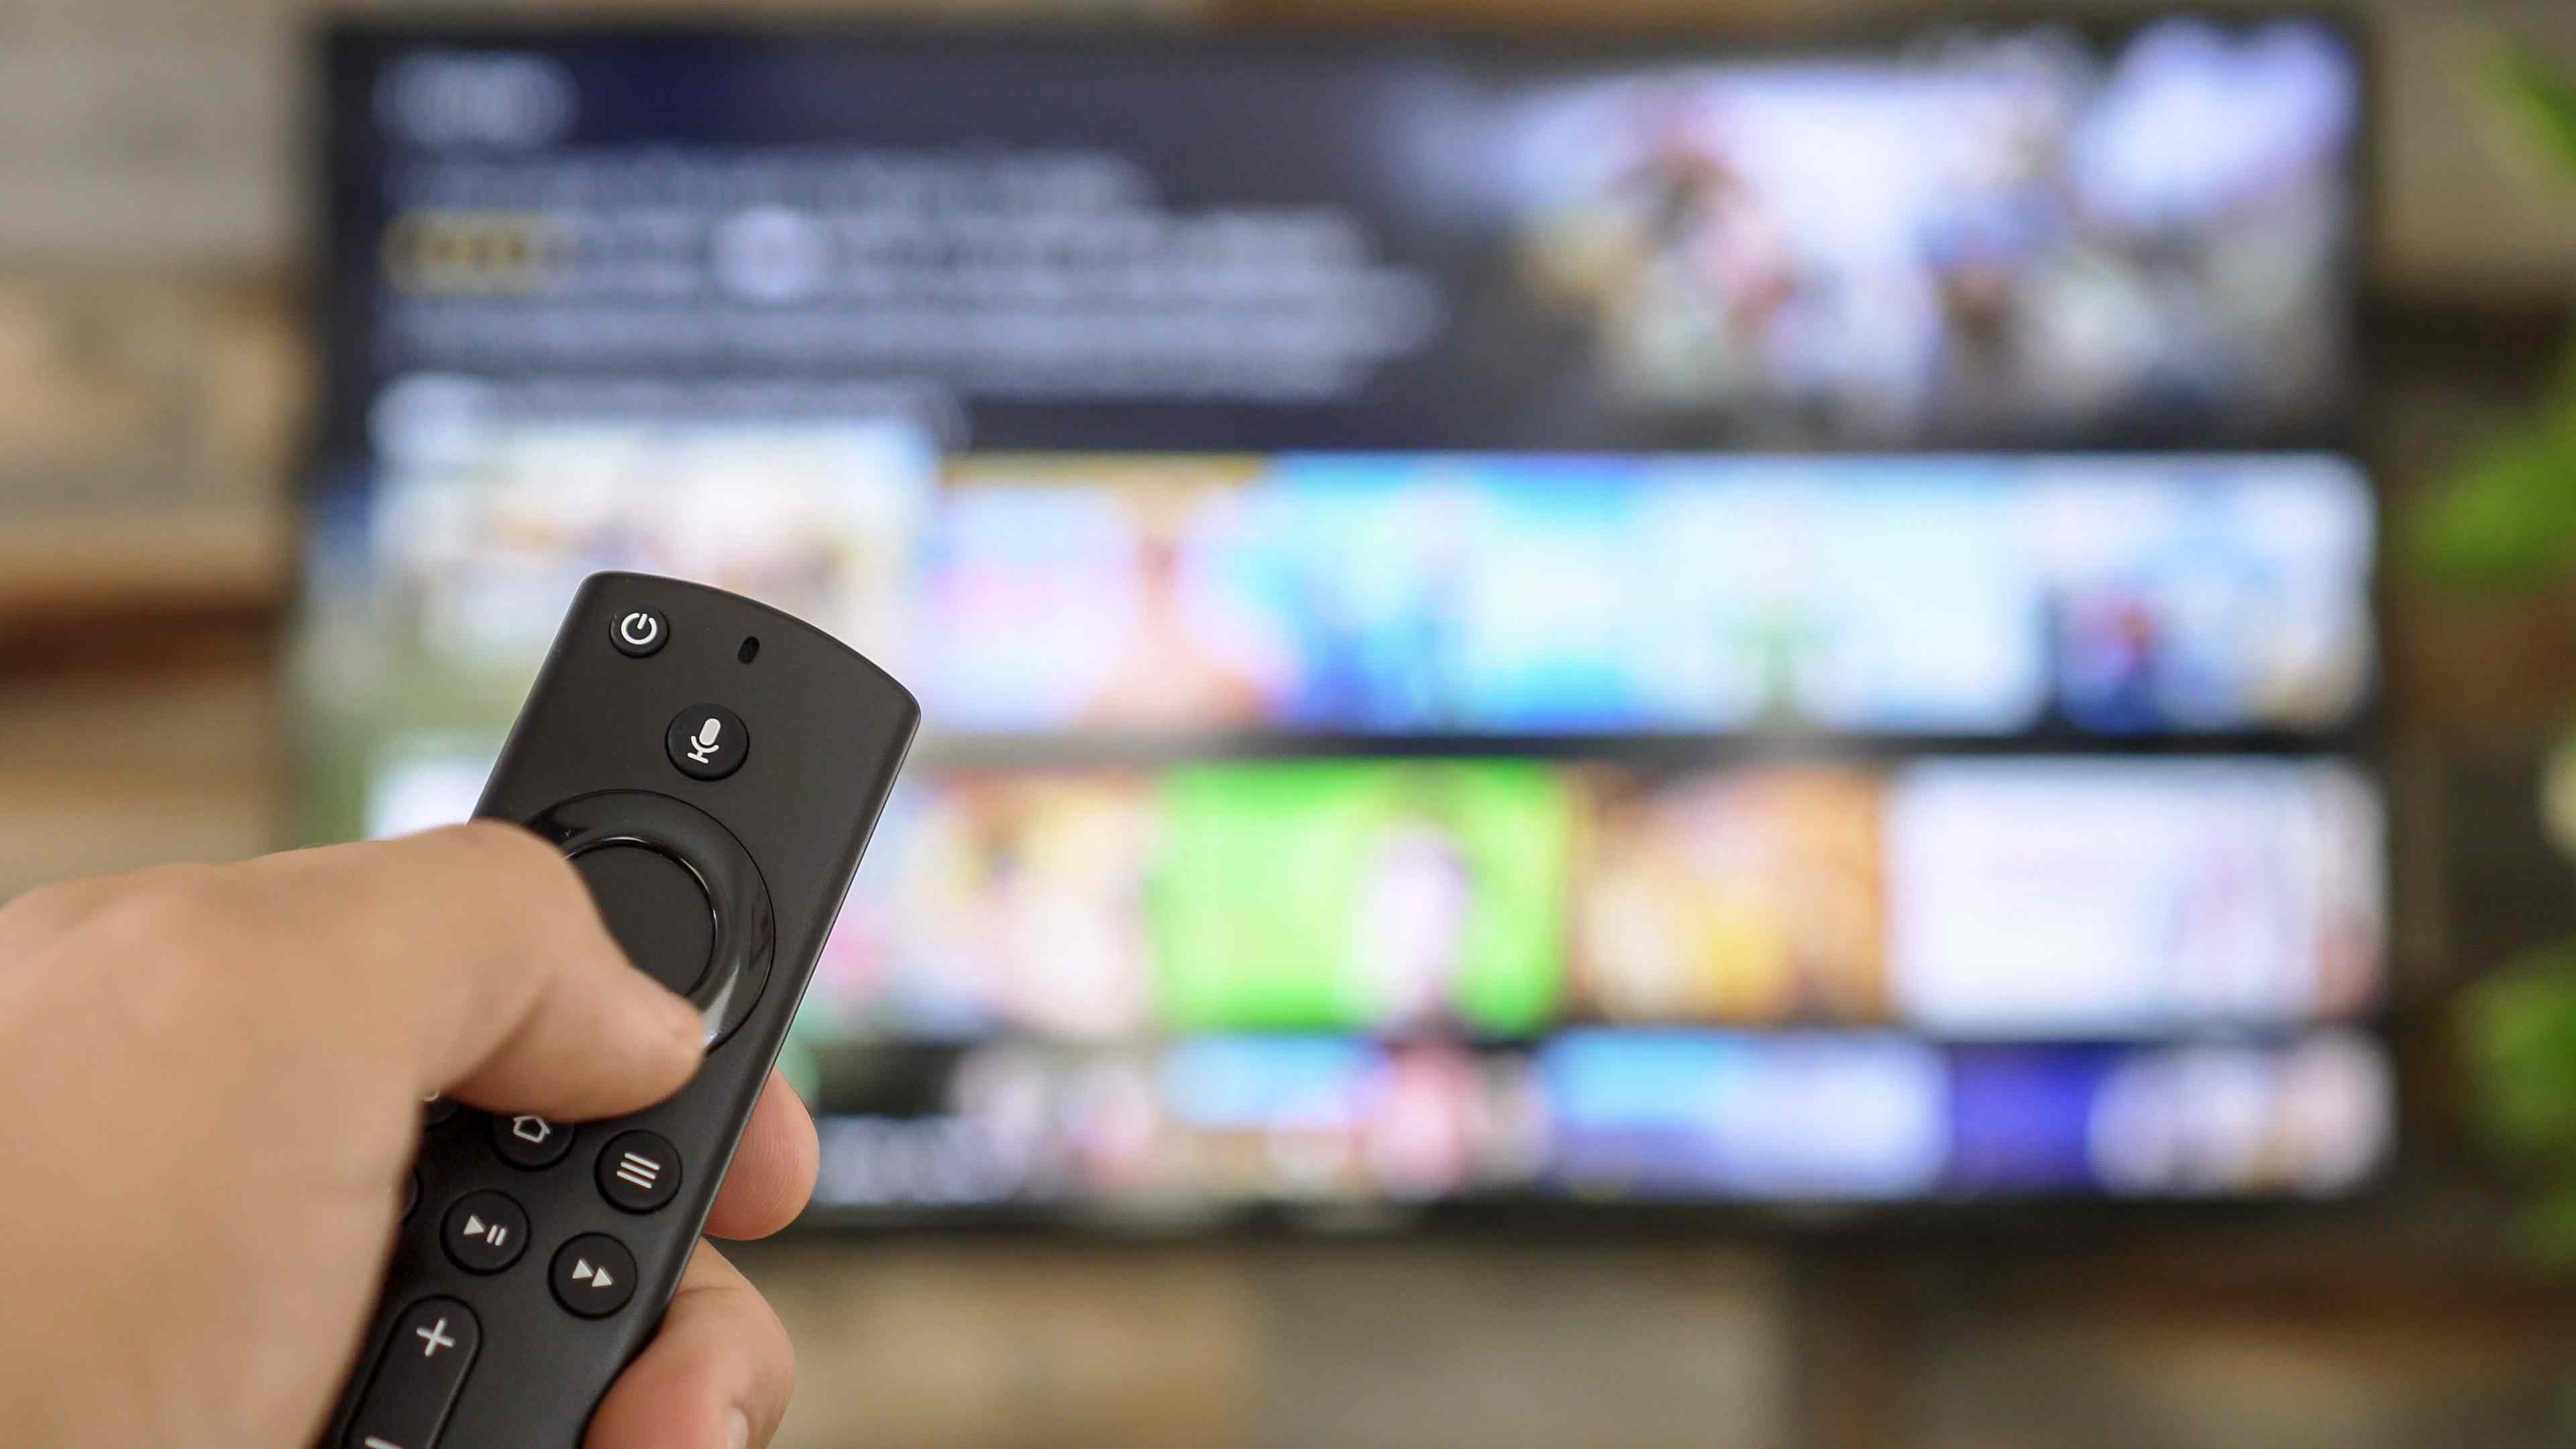 Closeup of a hand holding a remote control with a streaming service on the TV in the background.